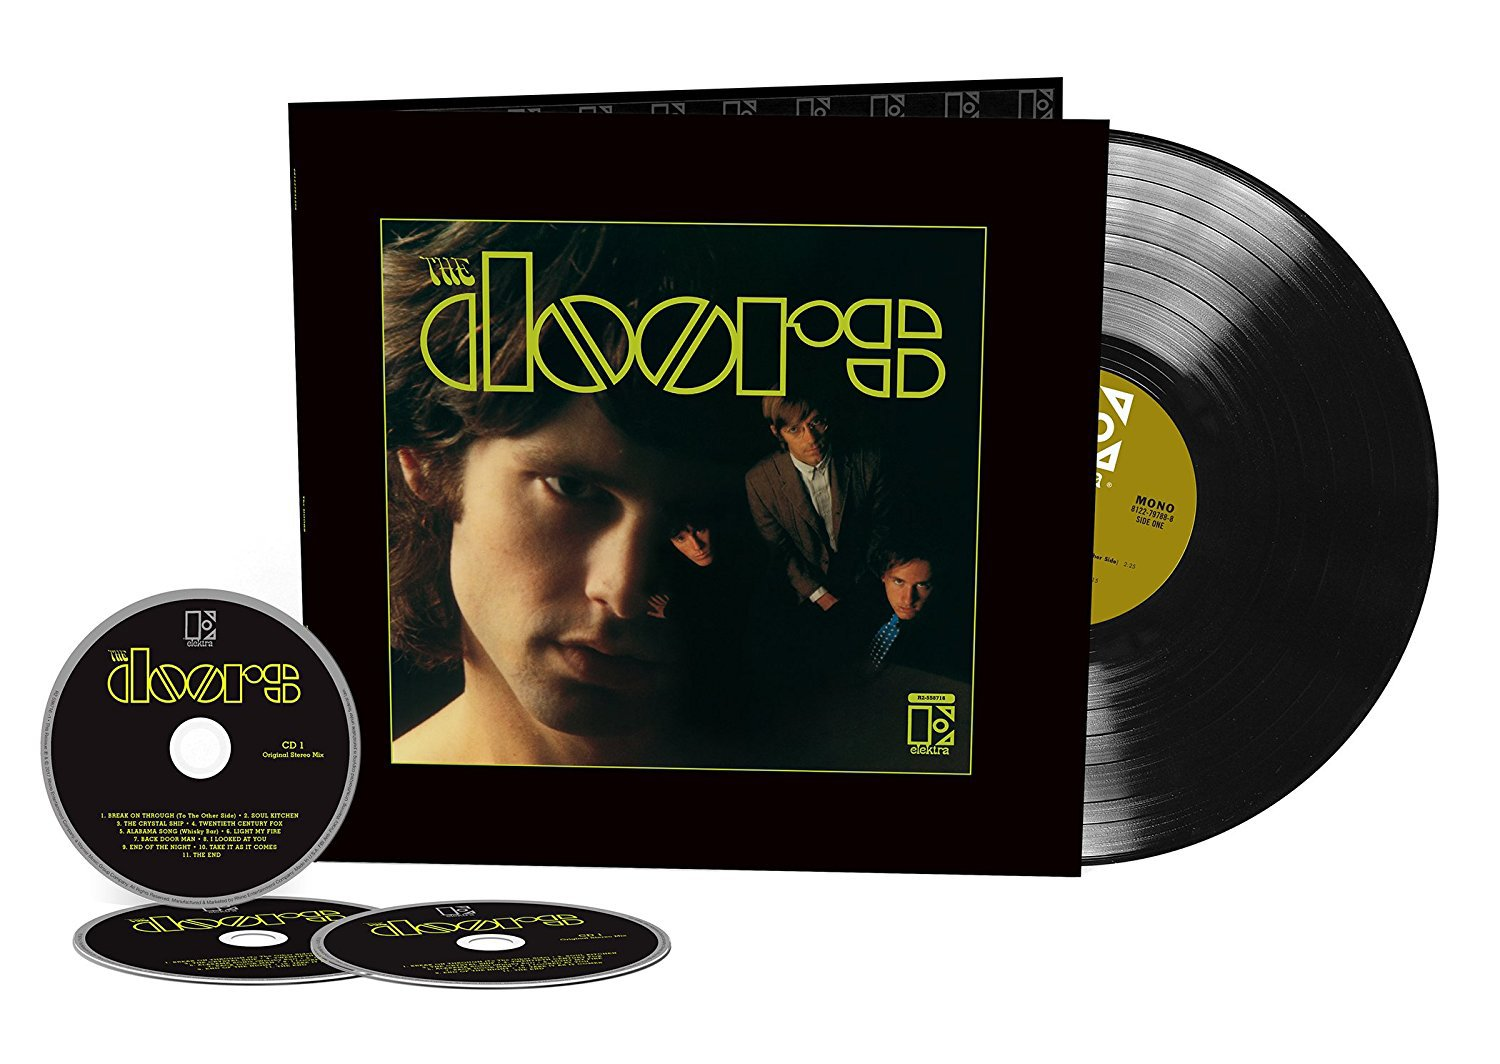 CD : The Doors - The Doors (With LP, Deluxe Edition, 4 Disc)